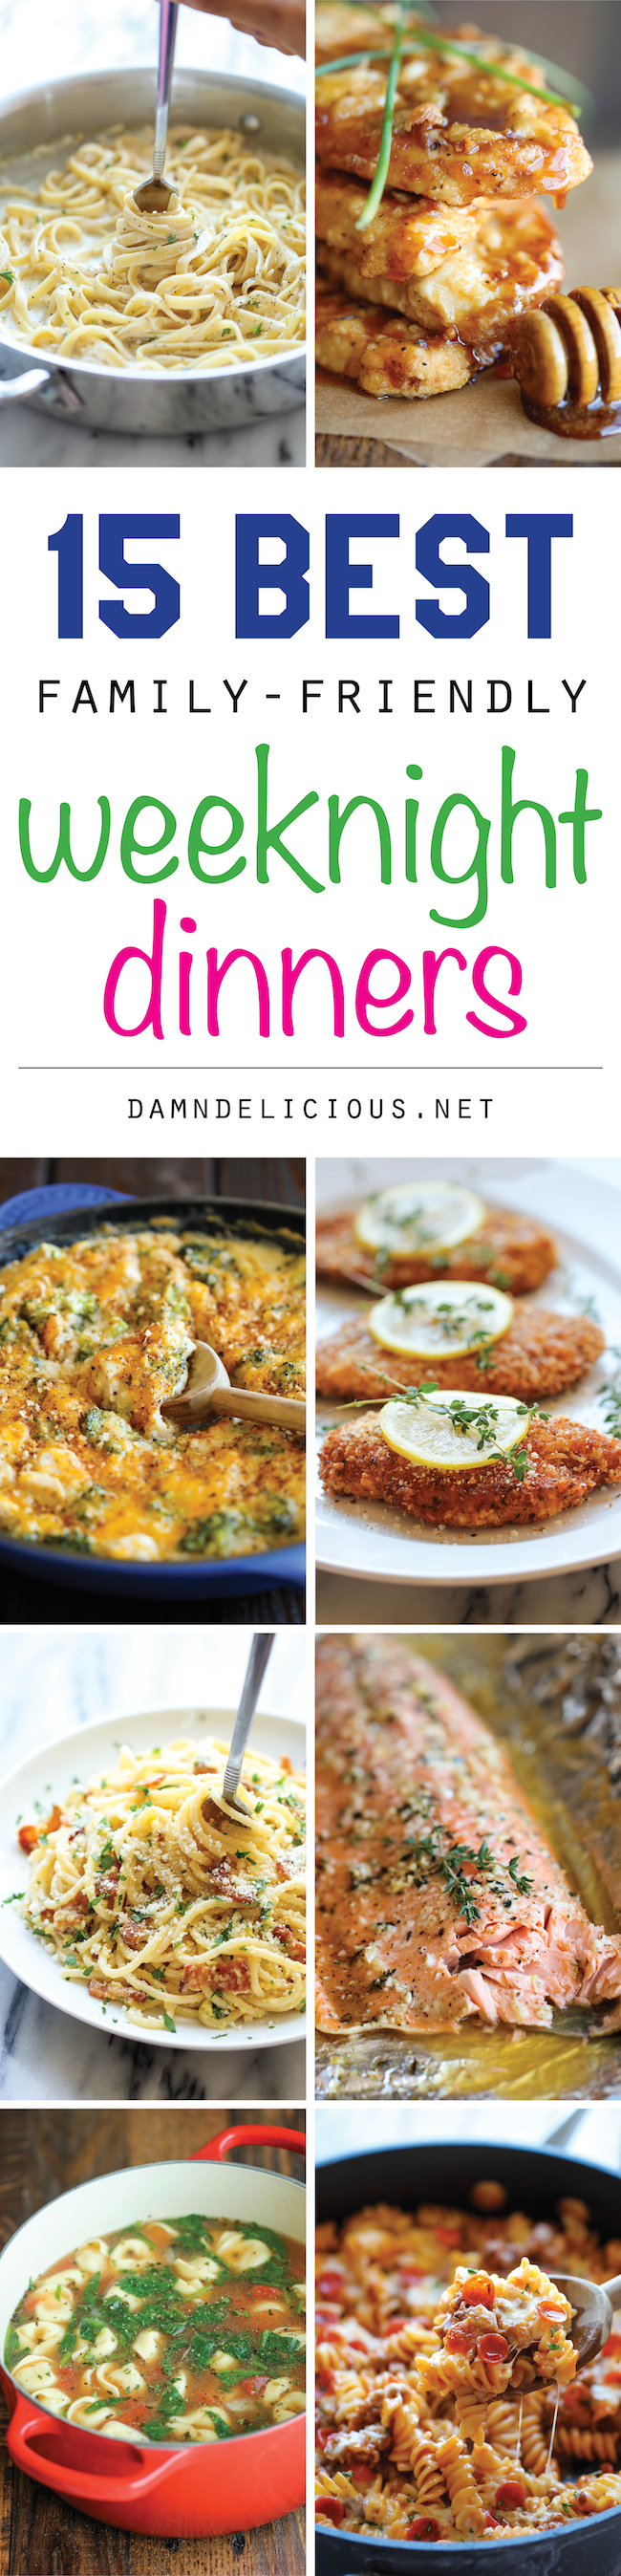 15 Best Family Friendly Weeknight Dinners Damn Delicious